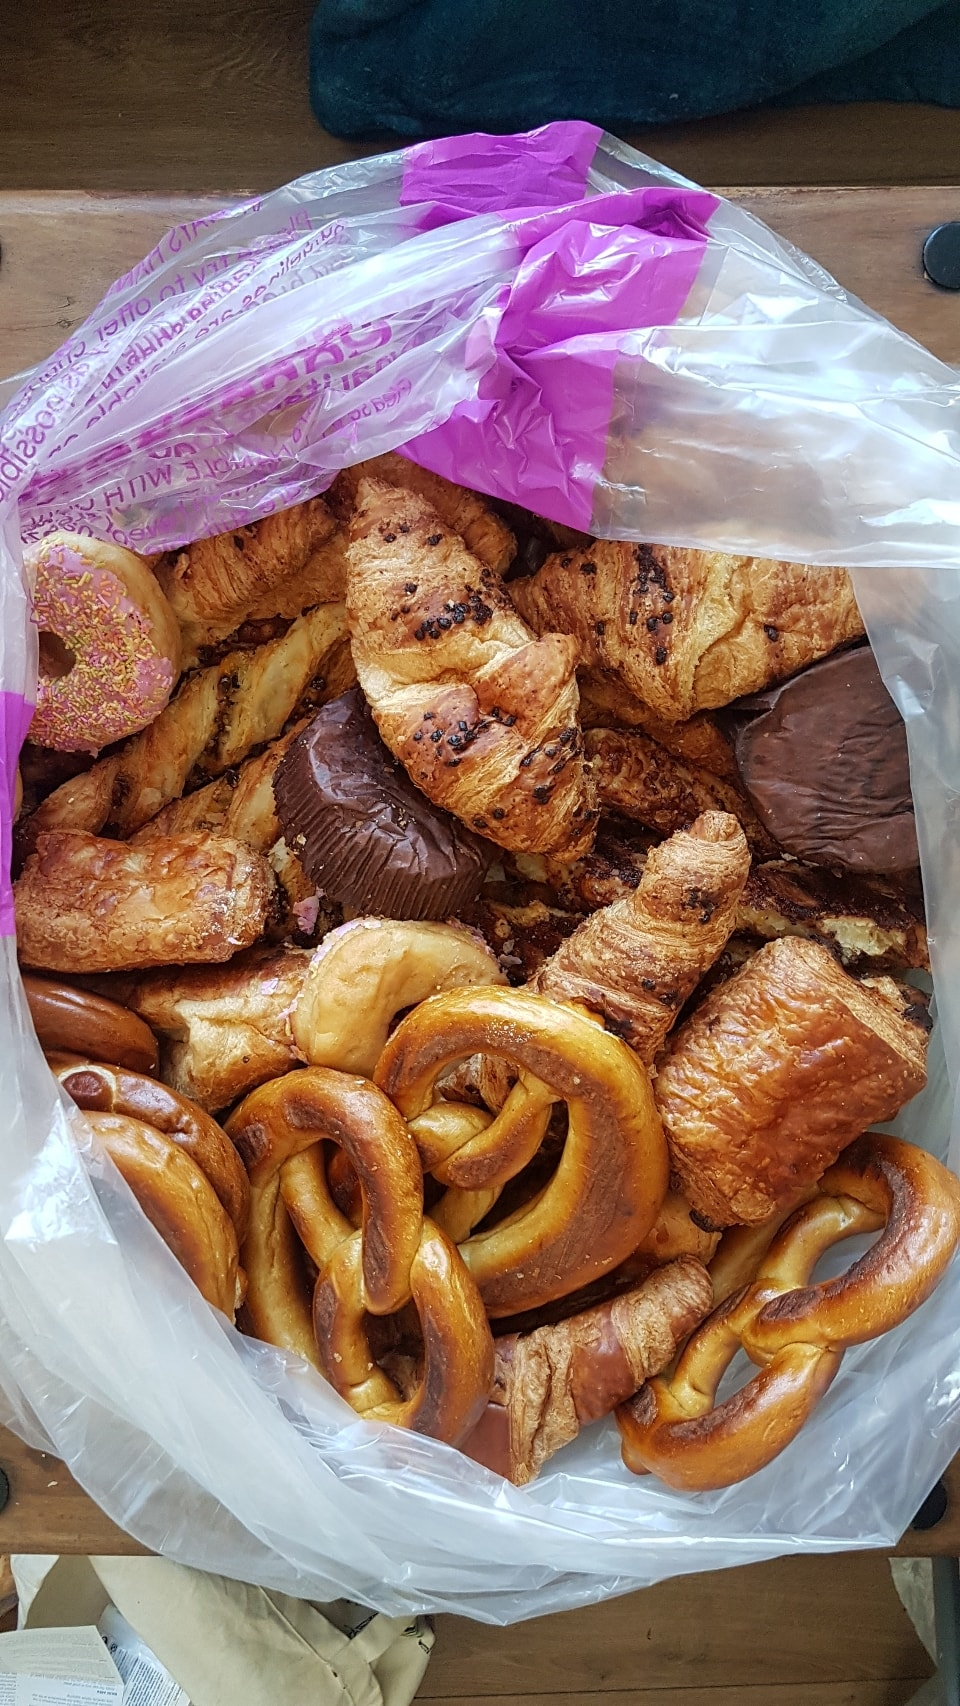 Pastries/ baked goods